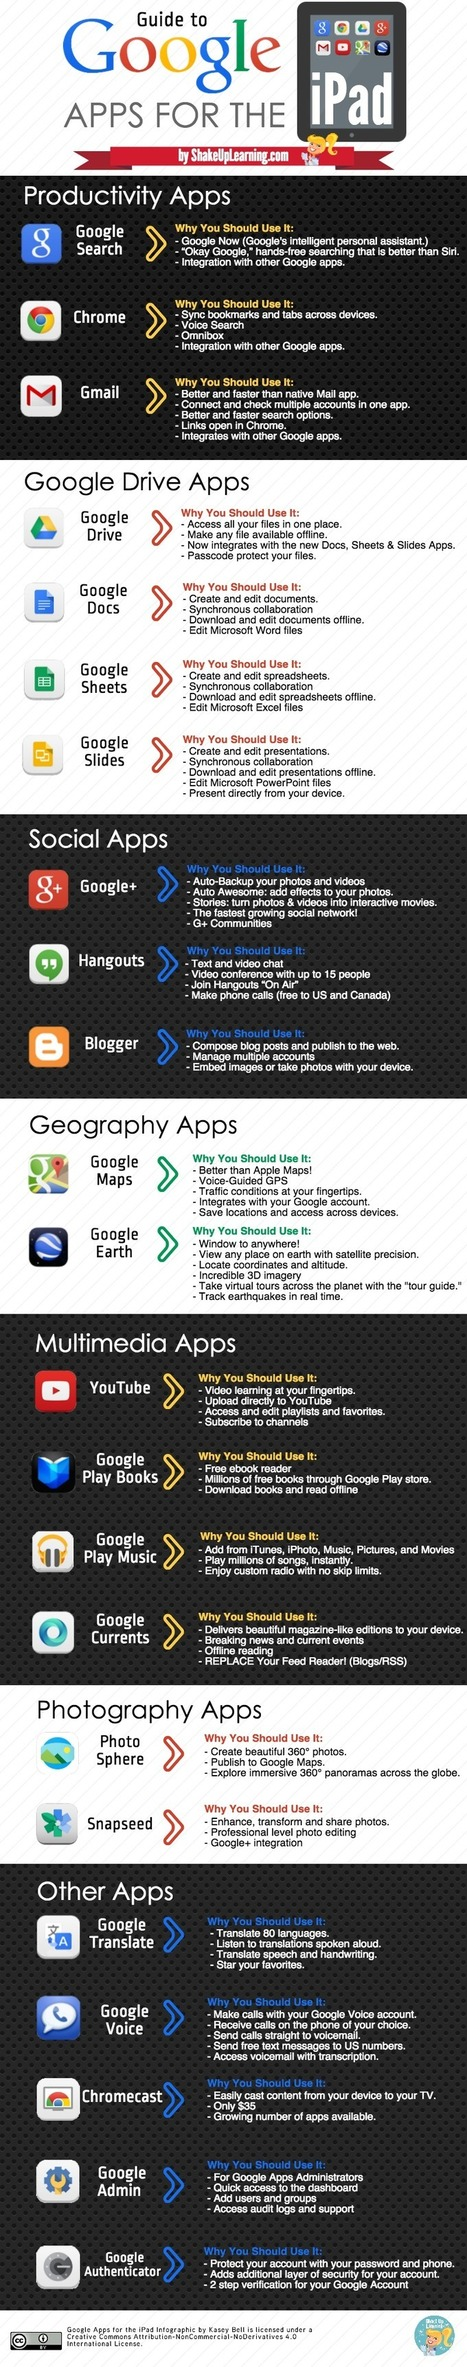 Guide to Google Apps for the iPad - Infographic | Uso educativo de TIC | Scoop.it